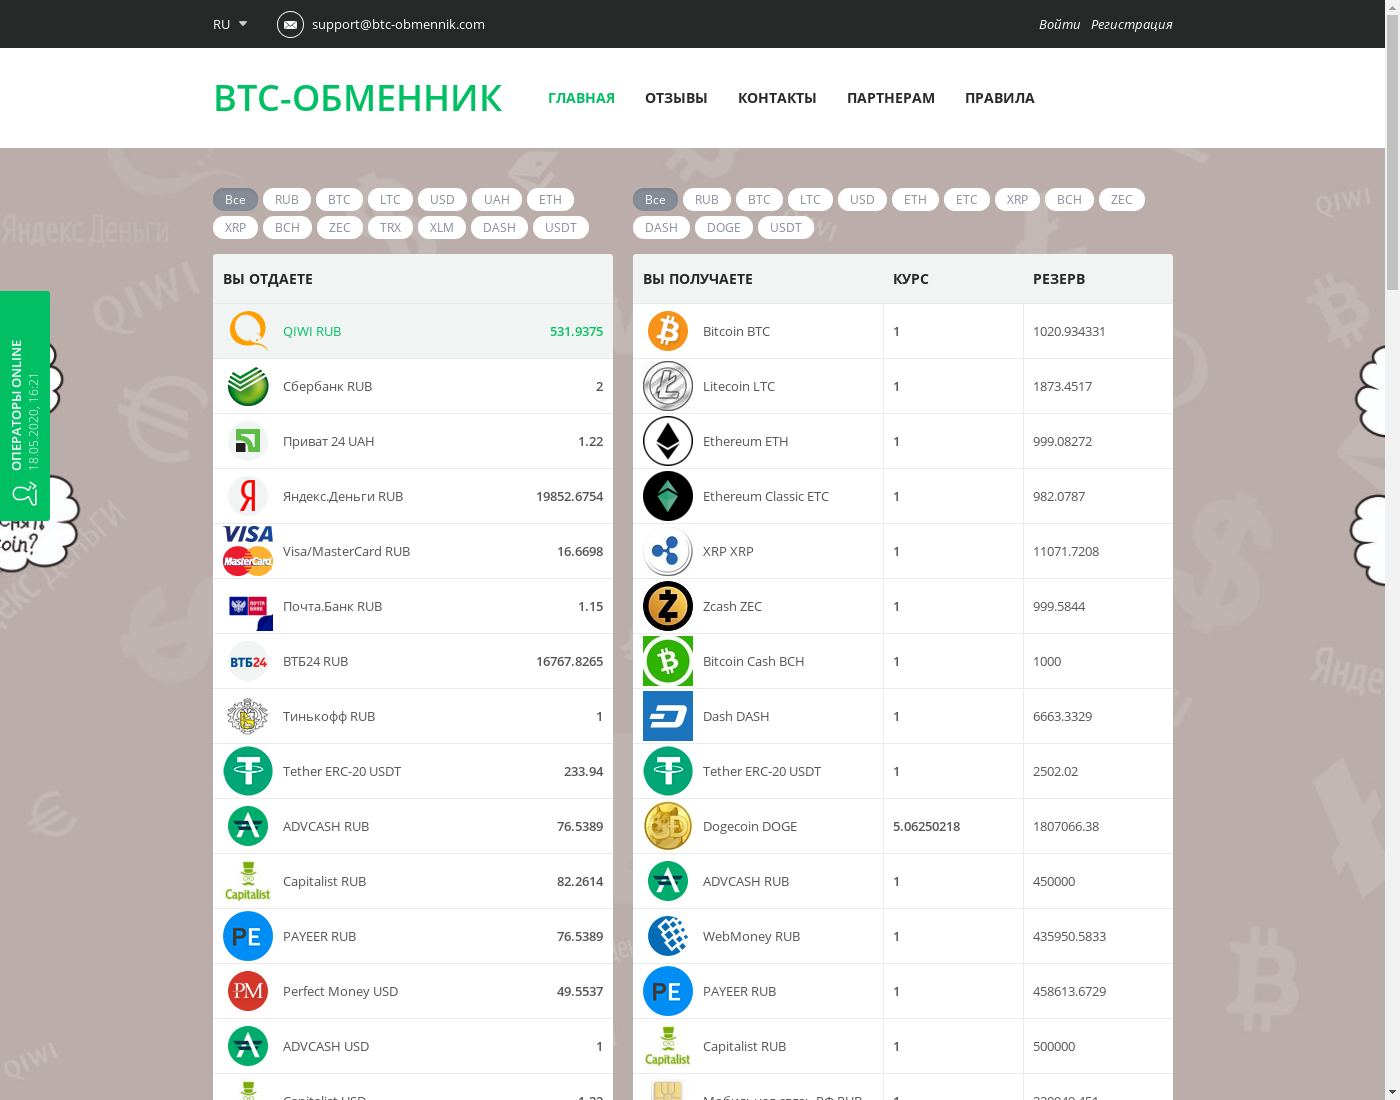 btc-obmennik user interface: the home page in English